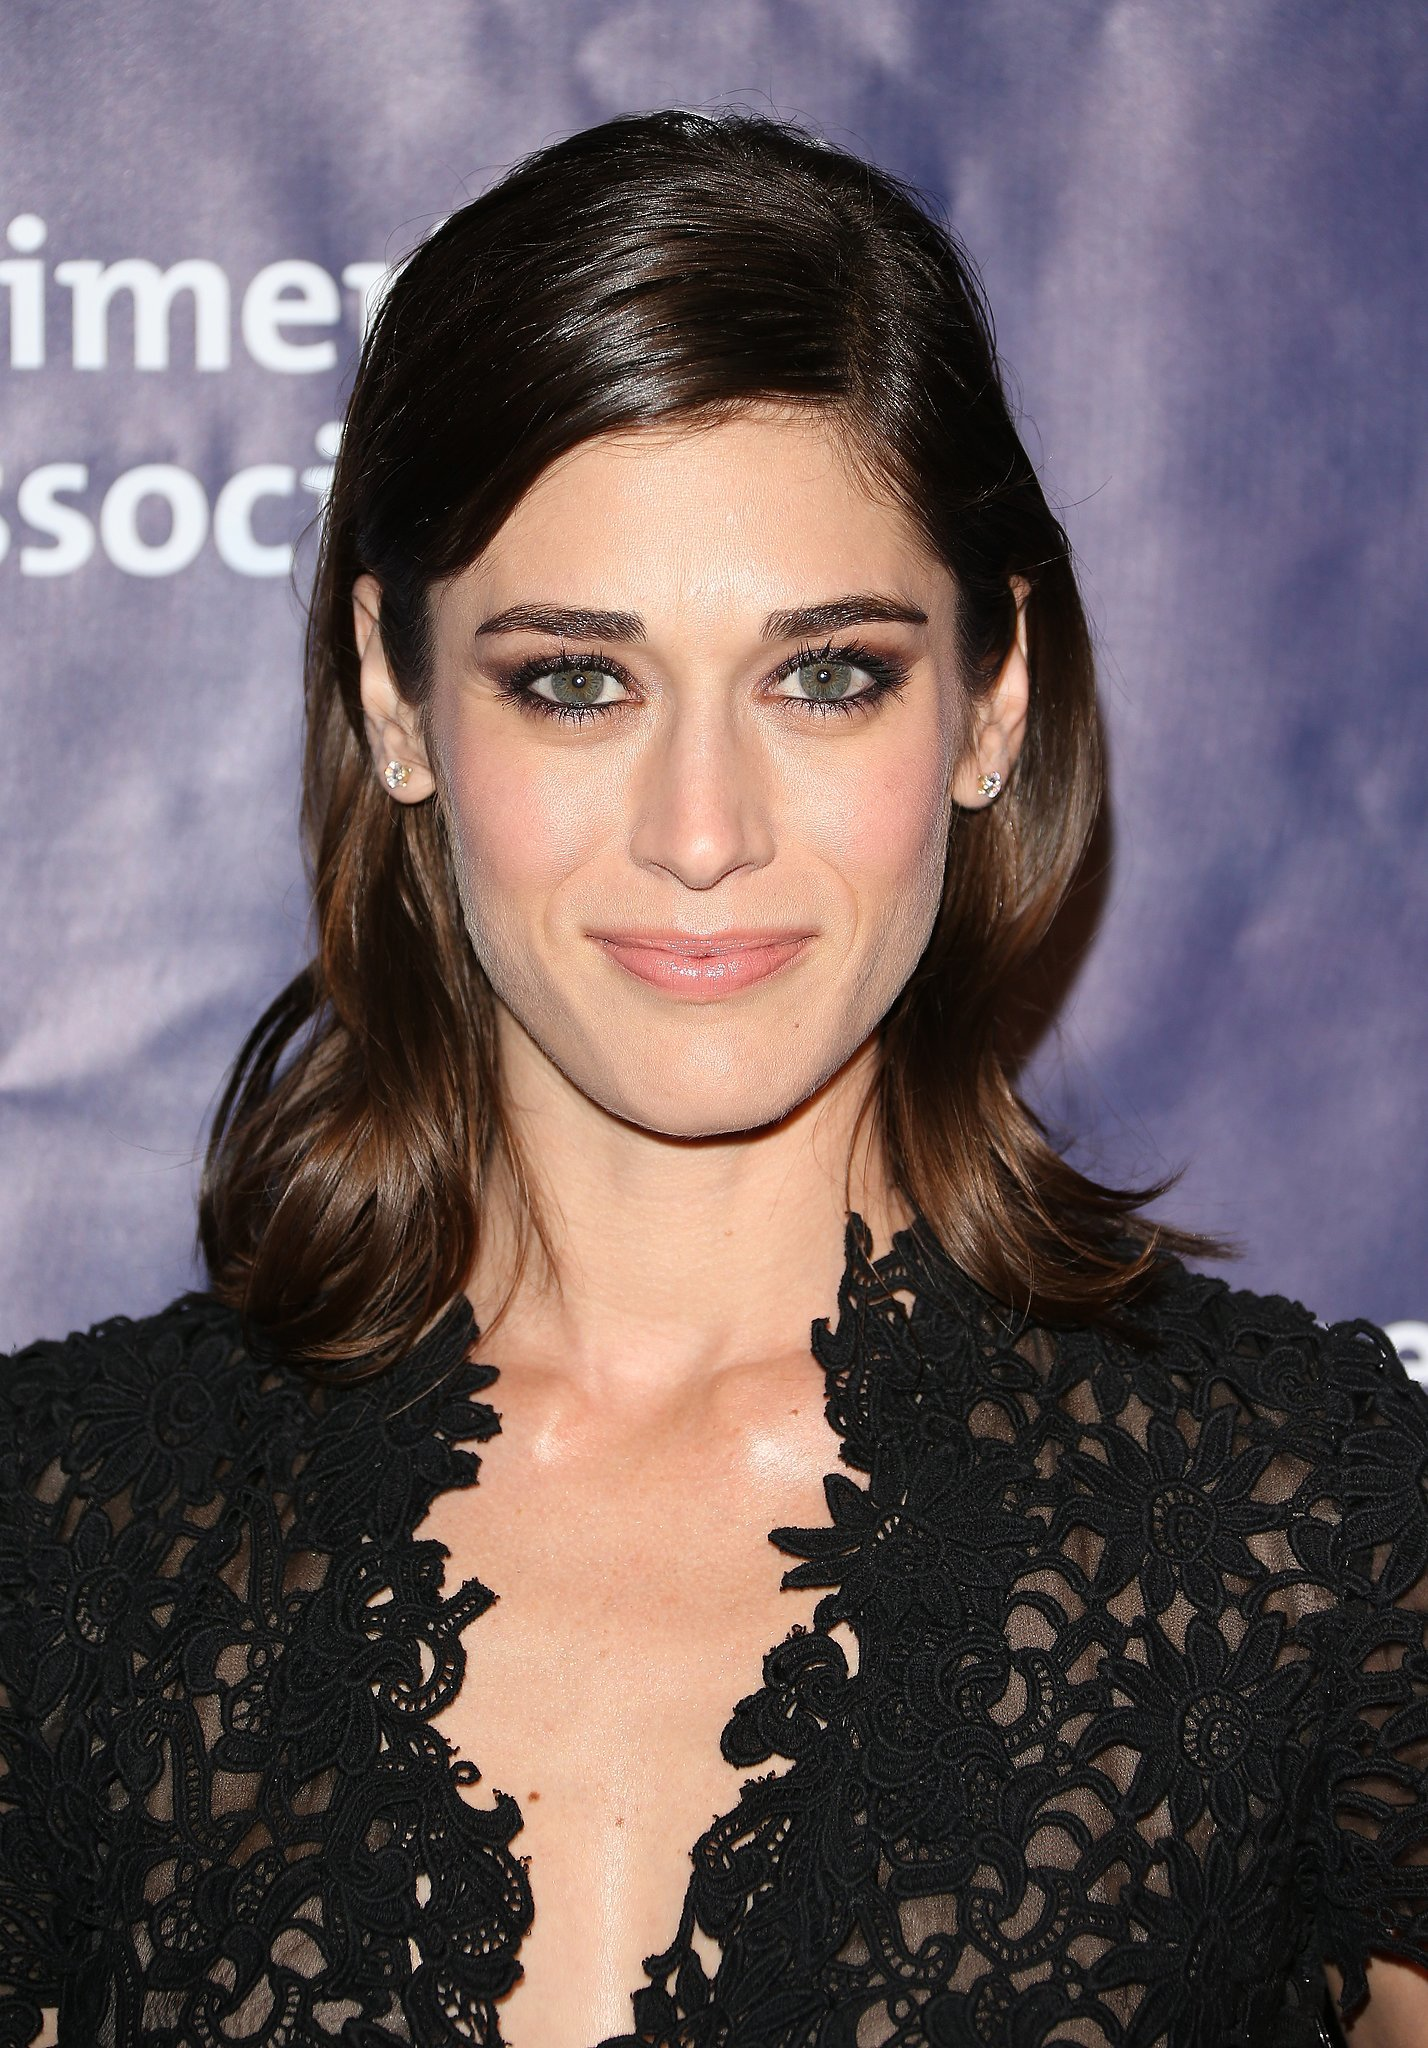 lizzy caplan wikilizzy caplan instagram, lizzy caplan katy perry, lizzy caplan wiki, lizzy caplan tom riley, lizzy caplan википедия, lizzy caplan imdb, lizzy caplan gif tumblr, lizzy caplan new girl, lizzy caplan brad pitt, lizzy caplan commercial, lizzy caplan youtube, lizzy caplan family, lizzy caplan age, lizzy caplan photo gallery, lizzy caplan leg, lizzy caplan makeup, lizzy caplan master of, lizzy caplan belly, lizzy caplan makeup tutorial, lizzy caplan icons